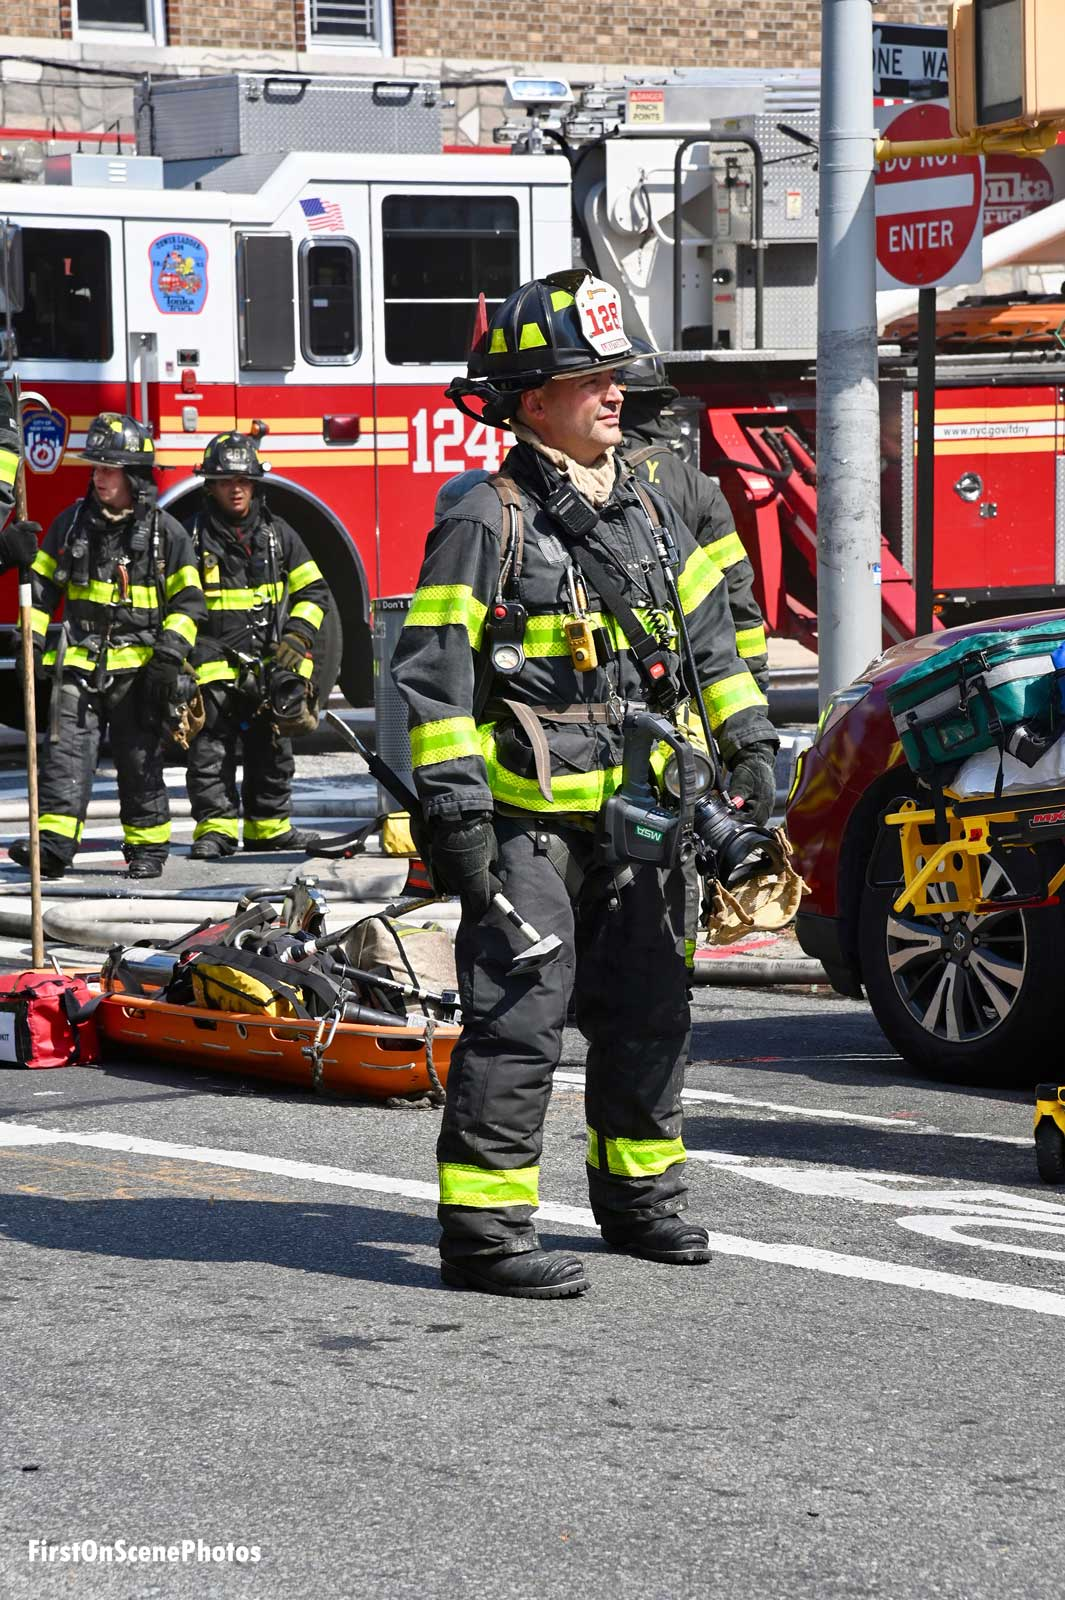 An FDNY firefighter on scene at the fire in Queens